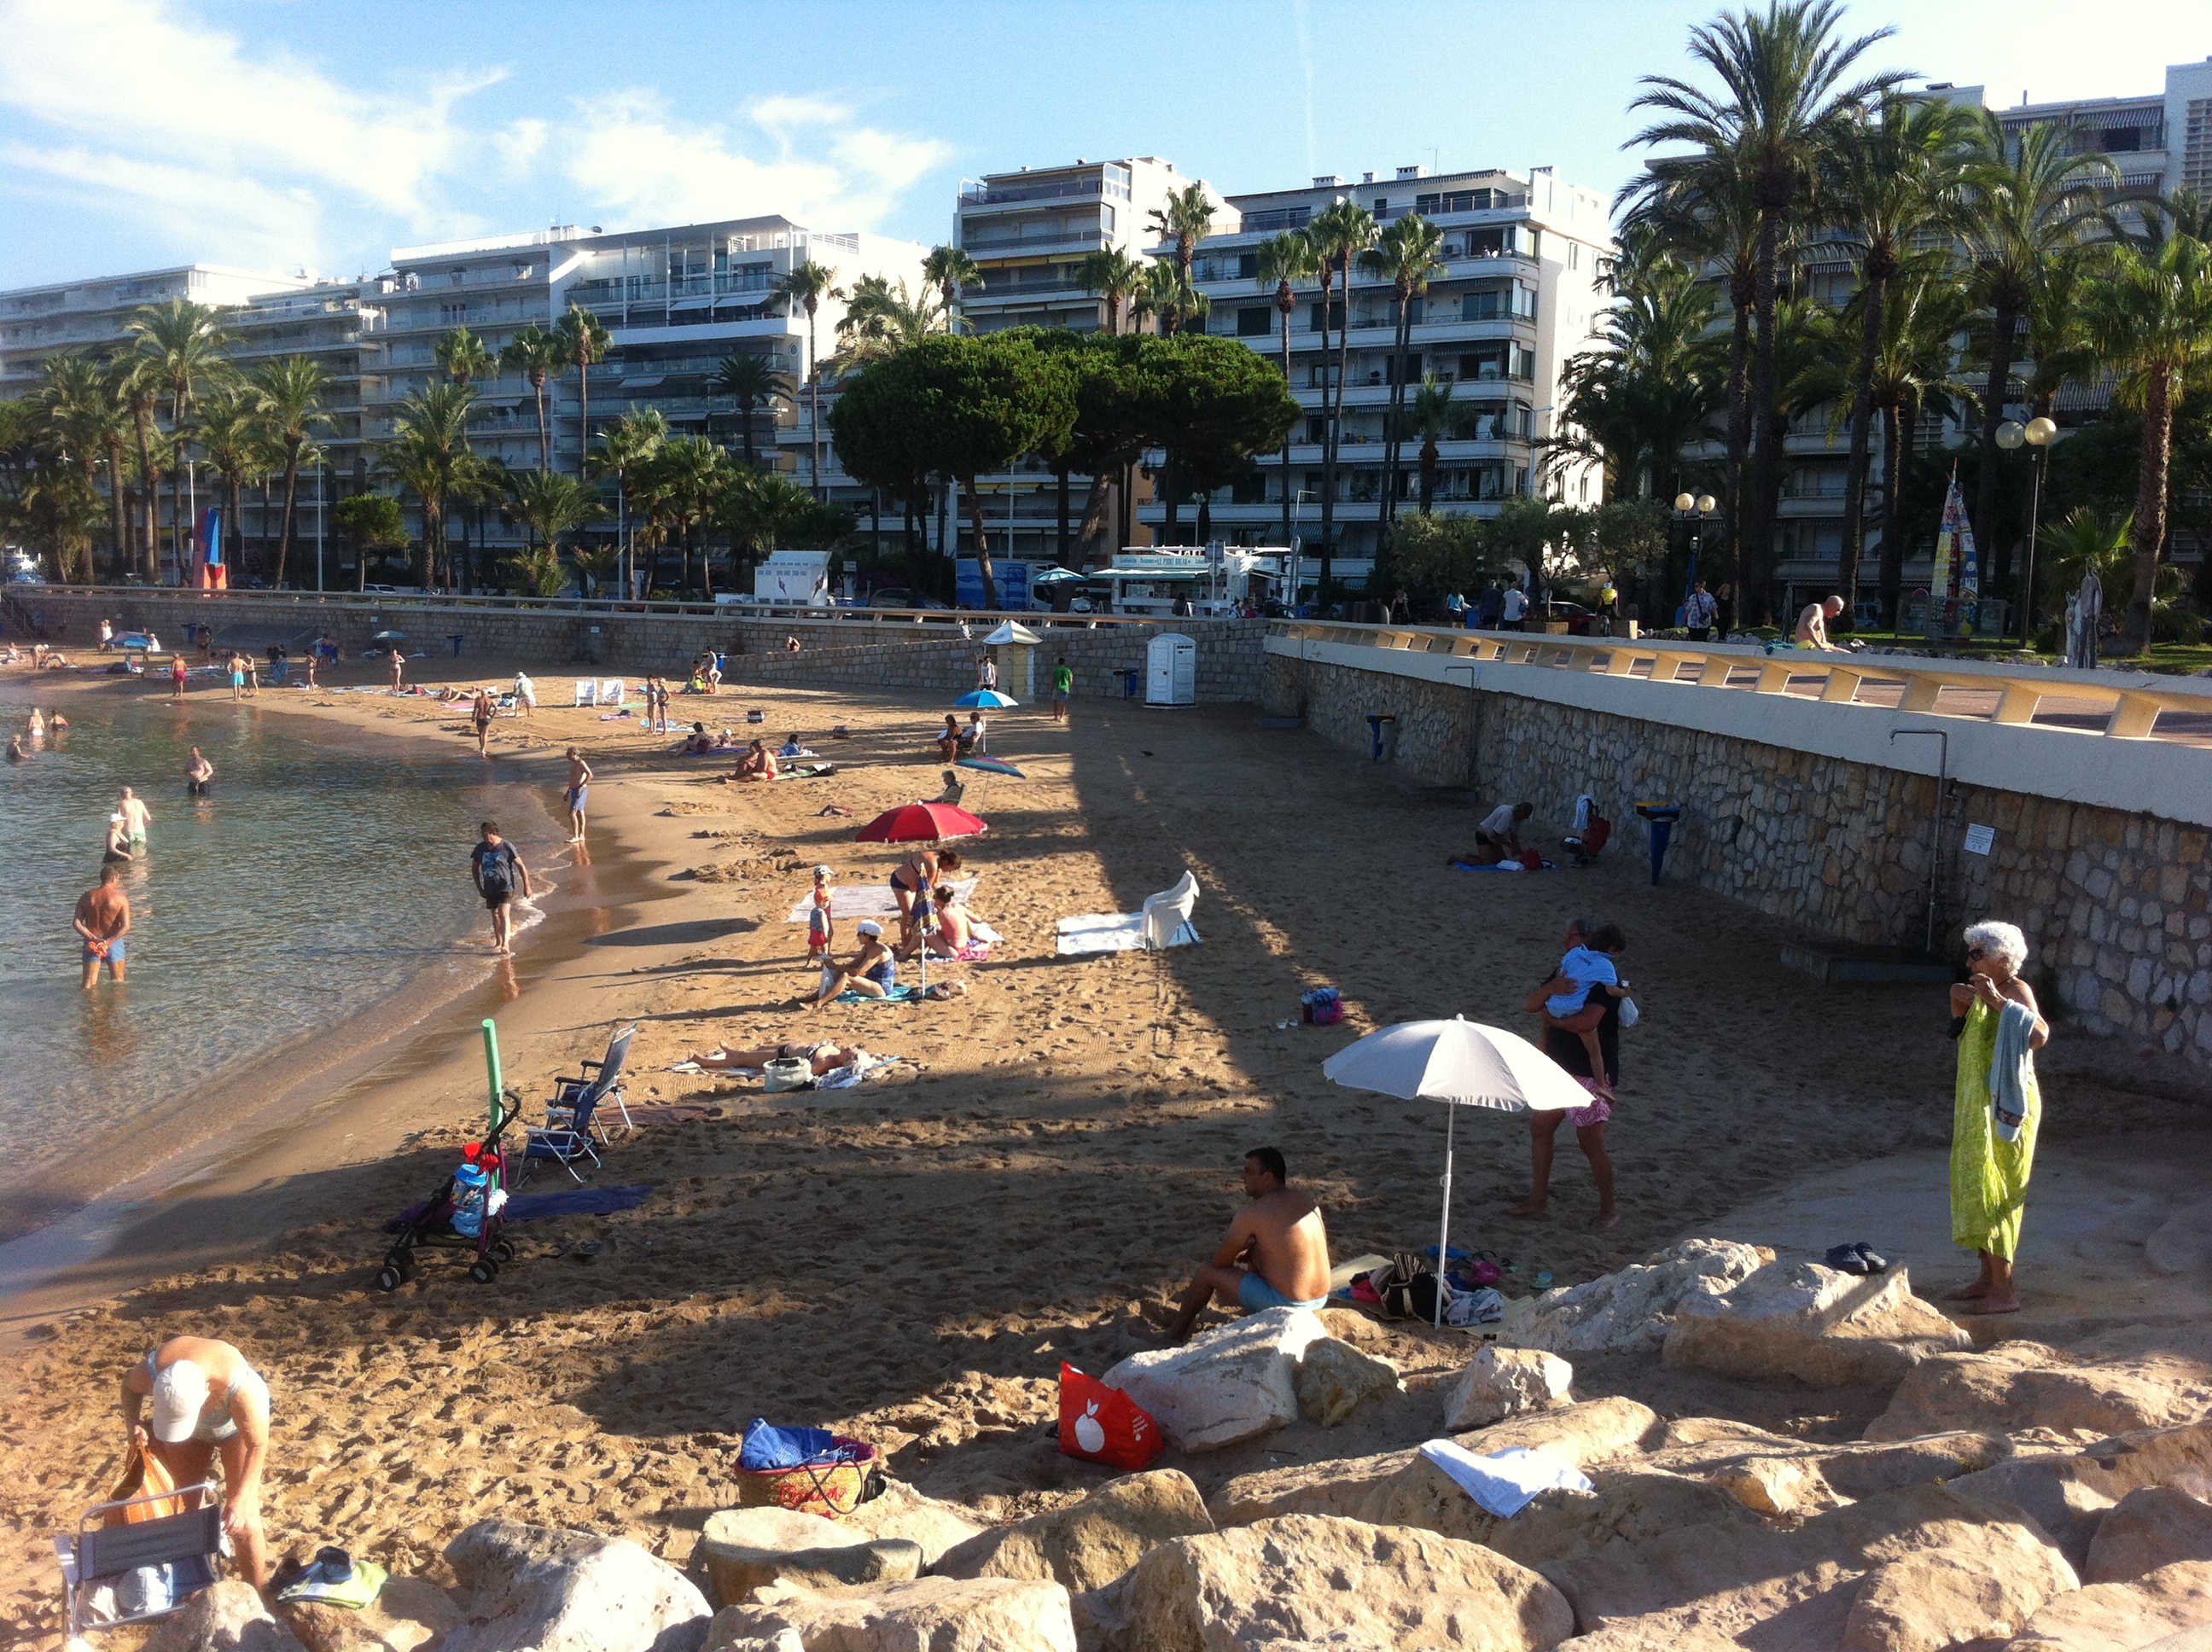 Early morning bathers on Cannes beach july 2016 Paul Conneally (haibun haiku Little Onion)